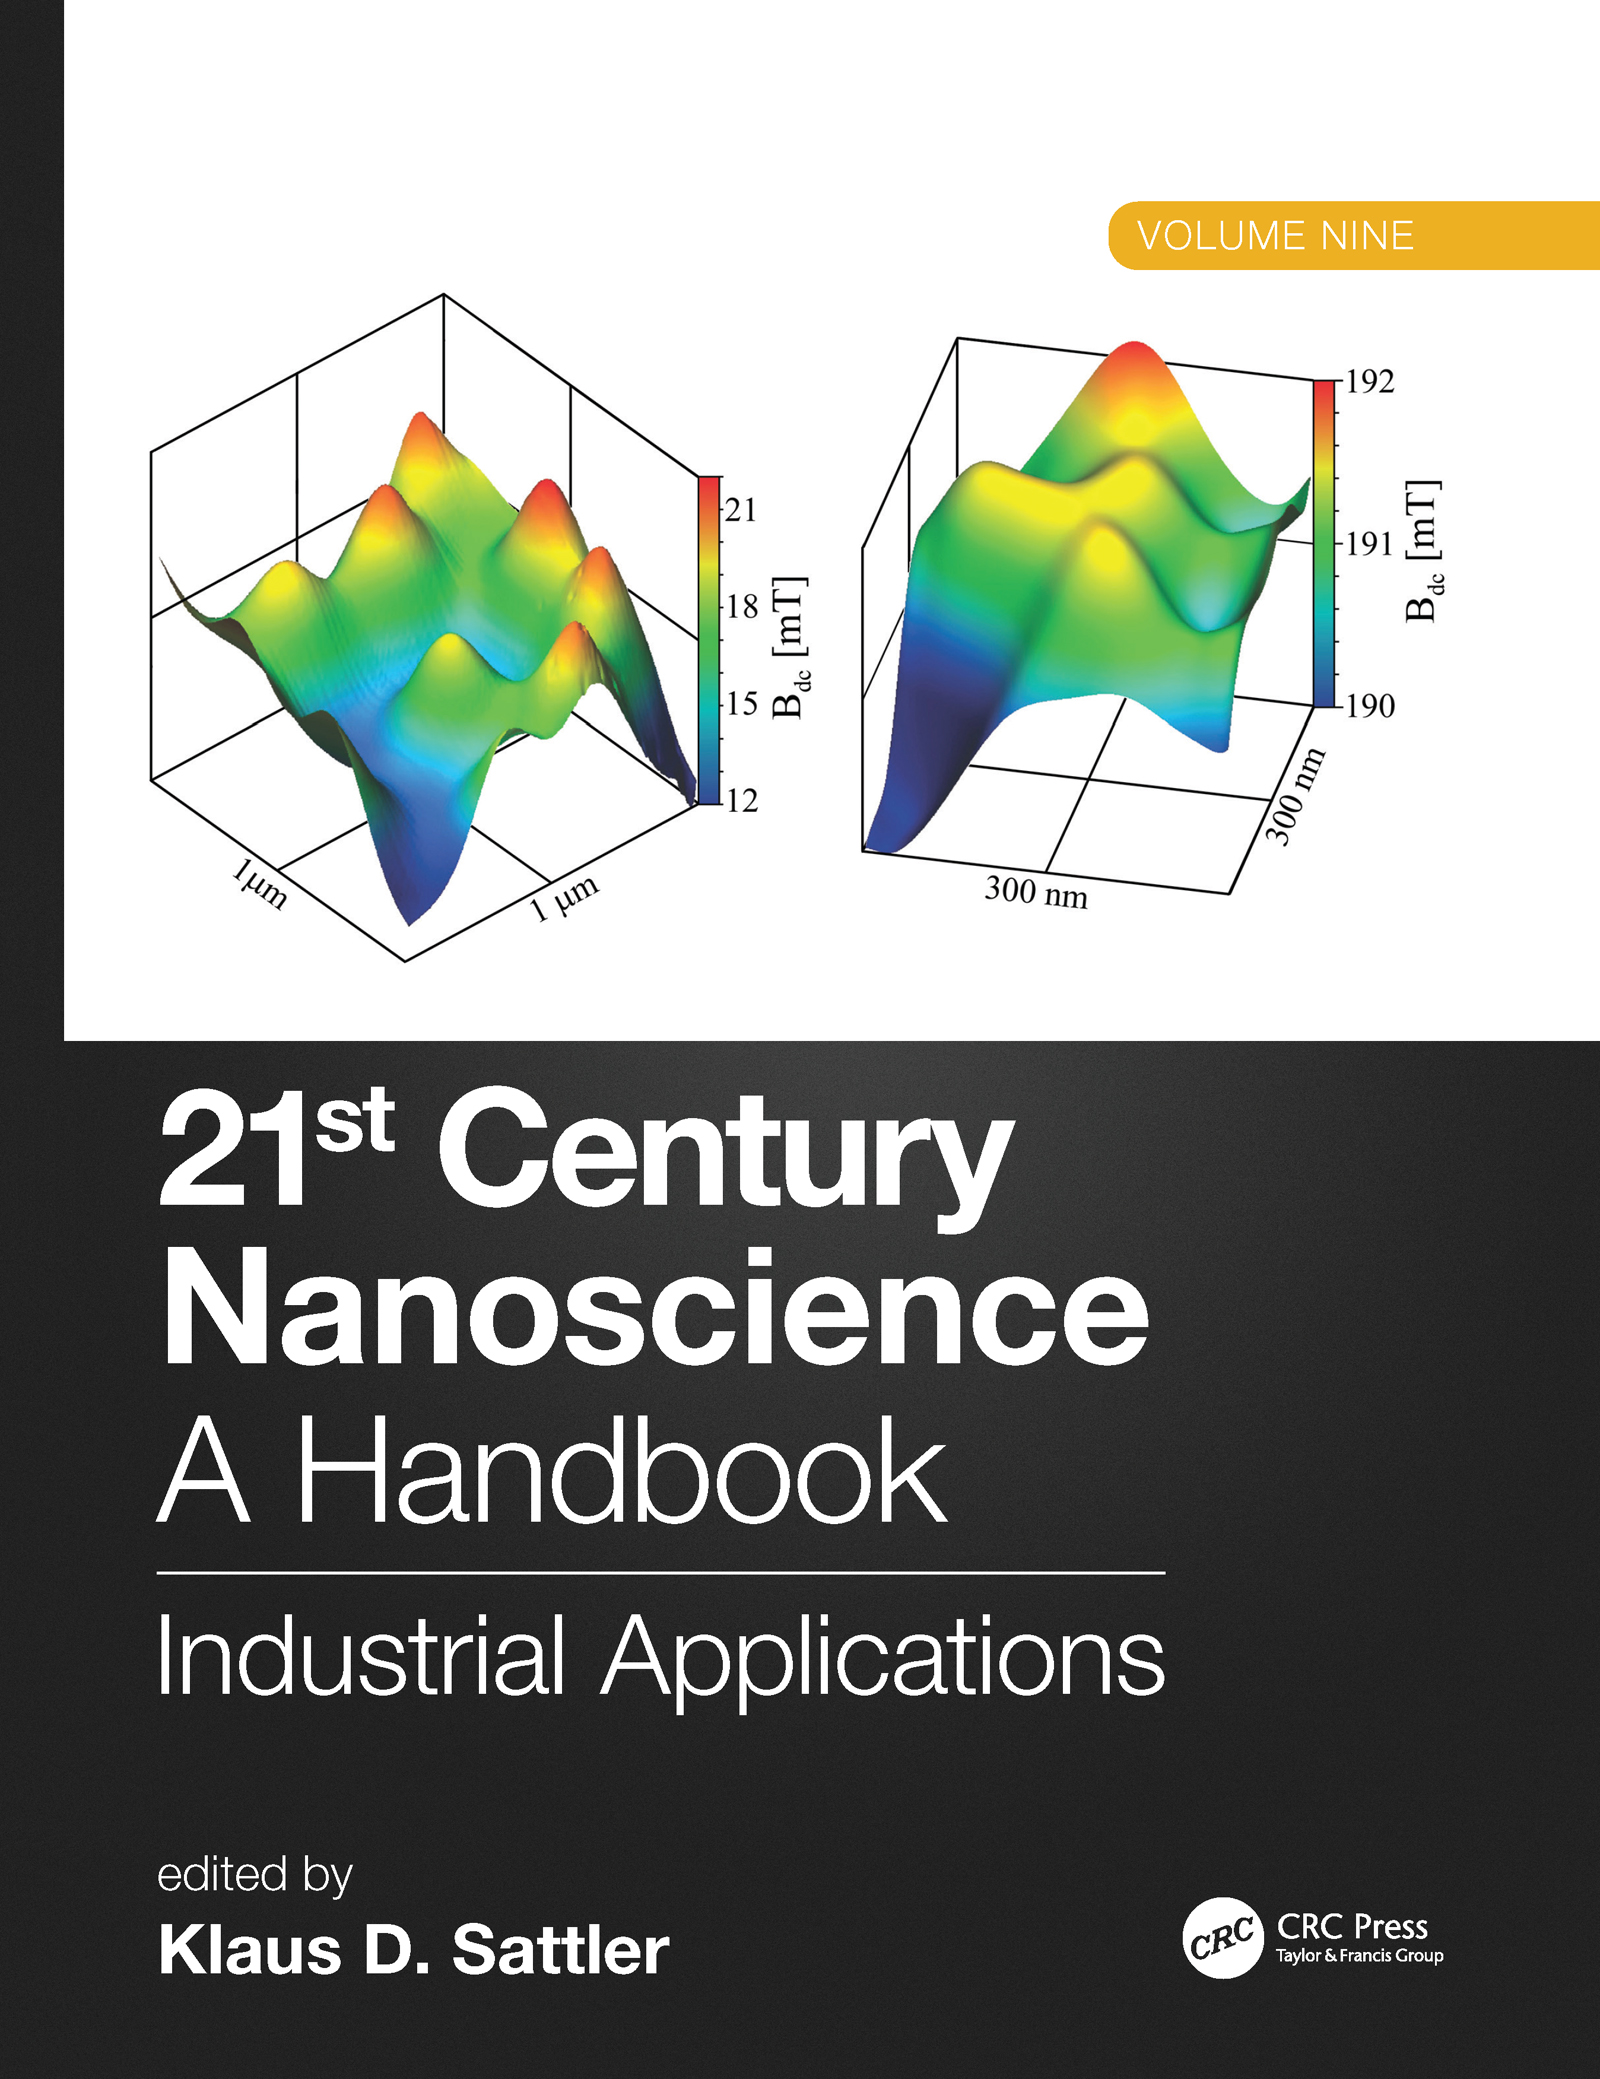 21st Century Nanoscience – A Handbook: Industrial Applications (Volume Nine) book cover